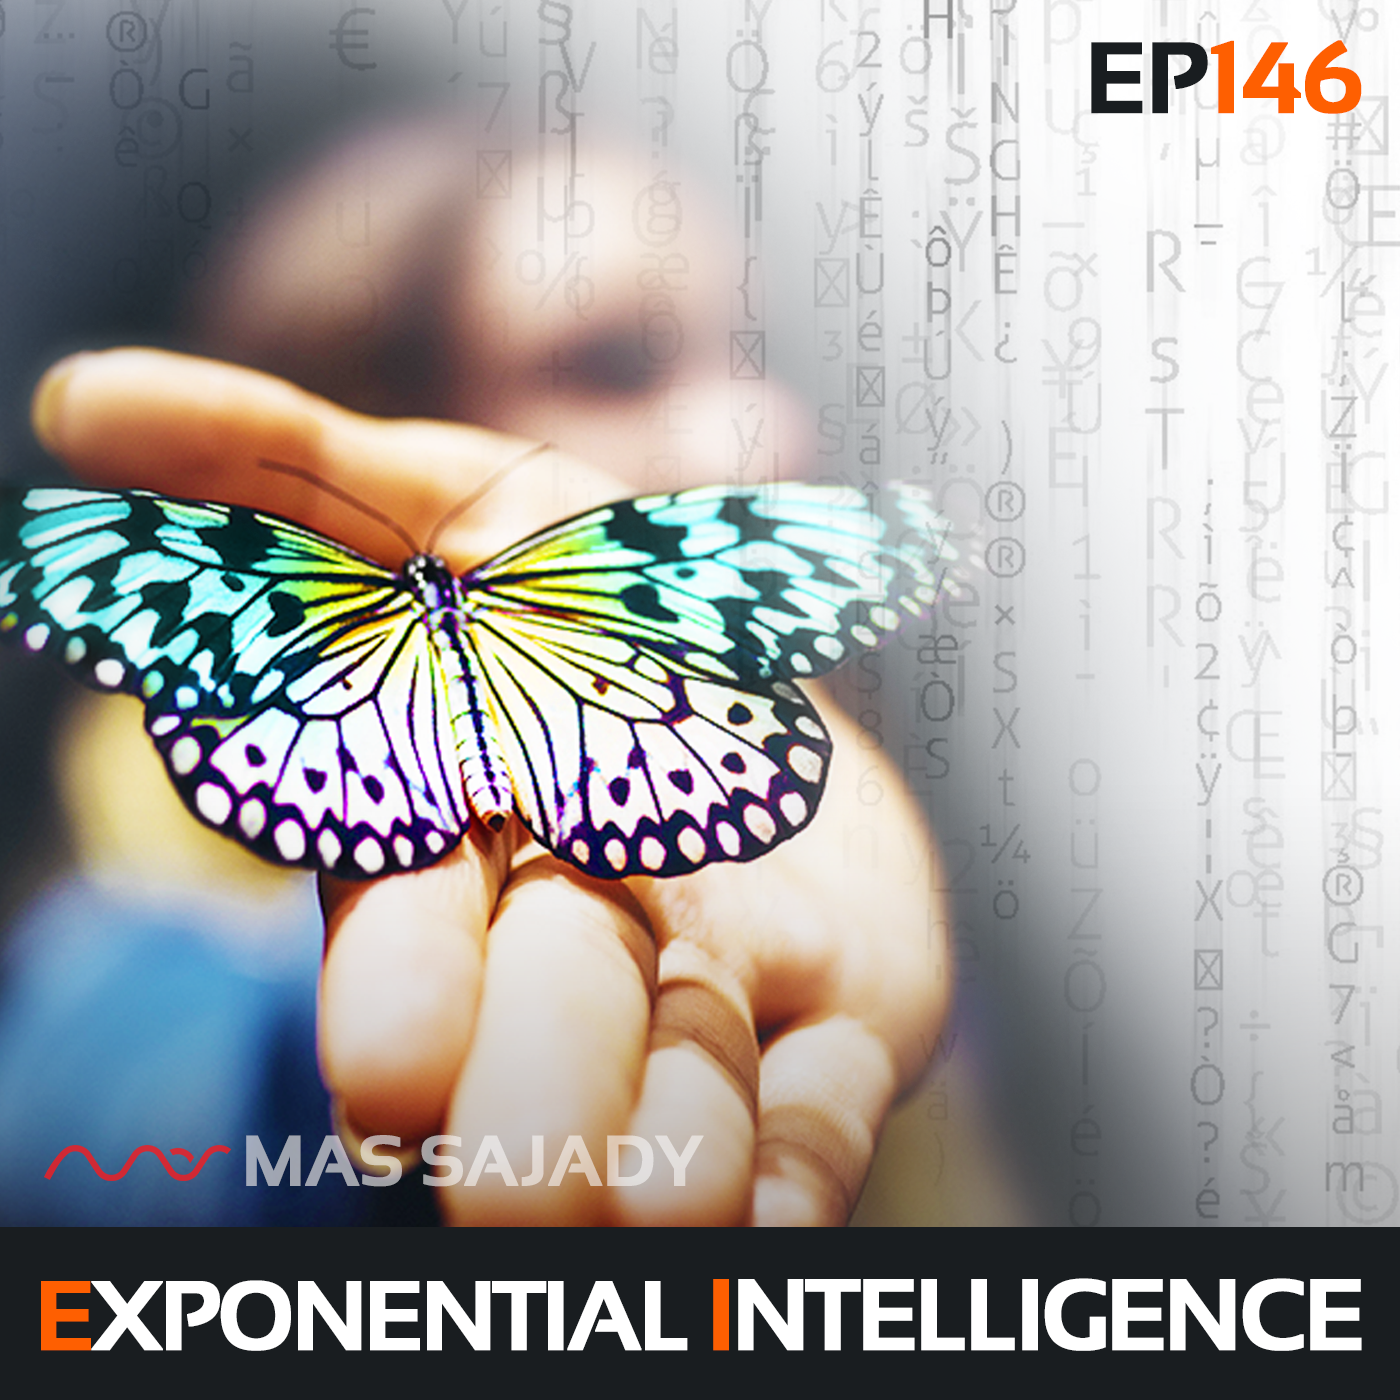 mas-sajady-exponential-intelligence-podcast-146-turning-abuse-into-homeopathic-medicine.png